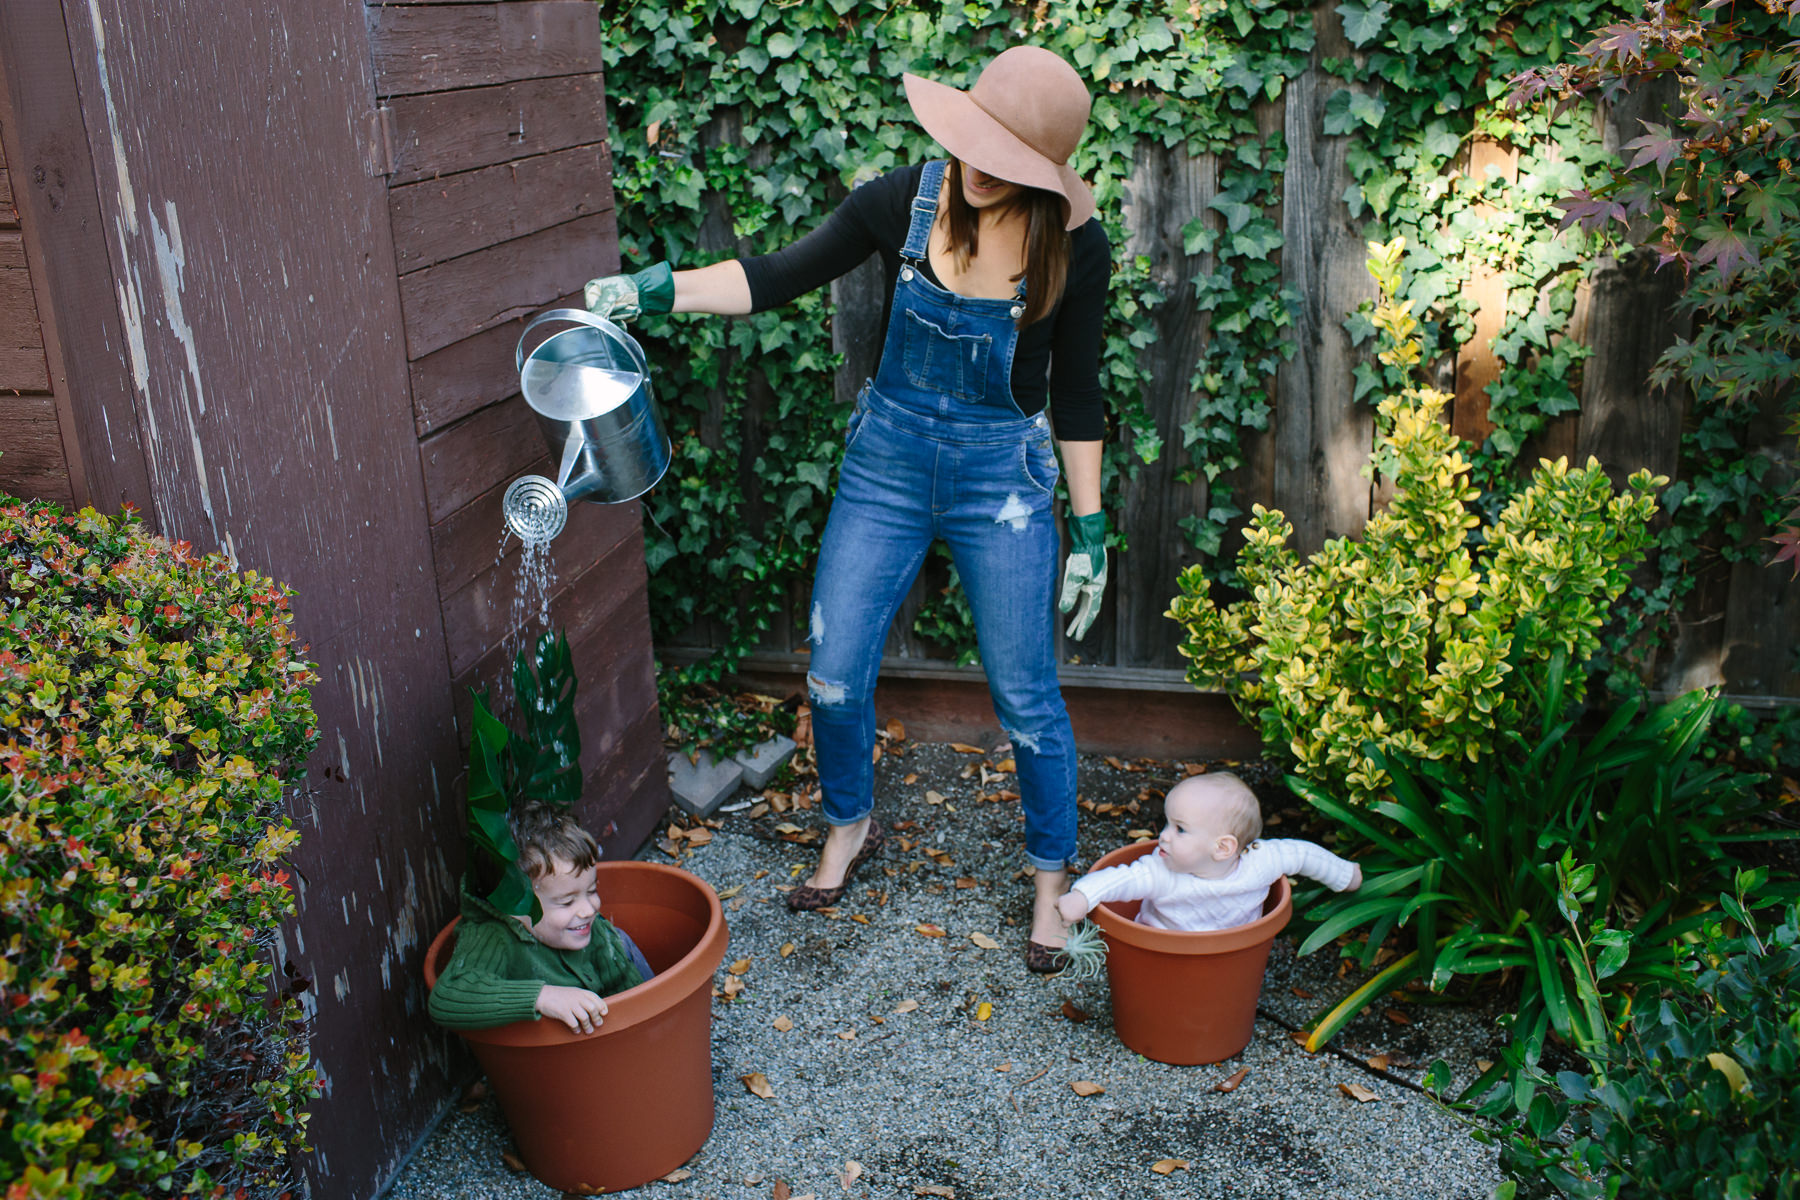 the-curiosity-project-blog-halloween-plant-lady-costumes (13 of 13).jpg